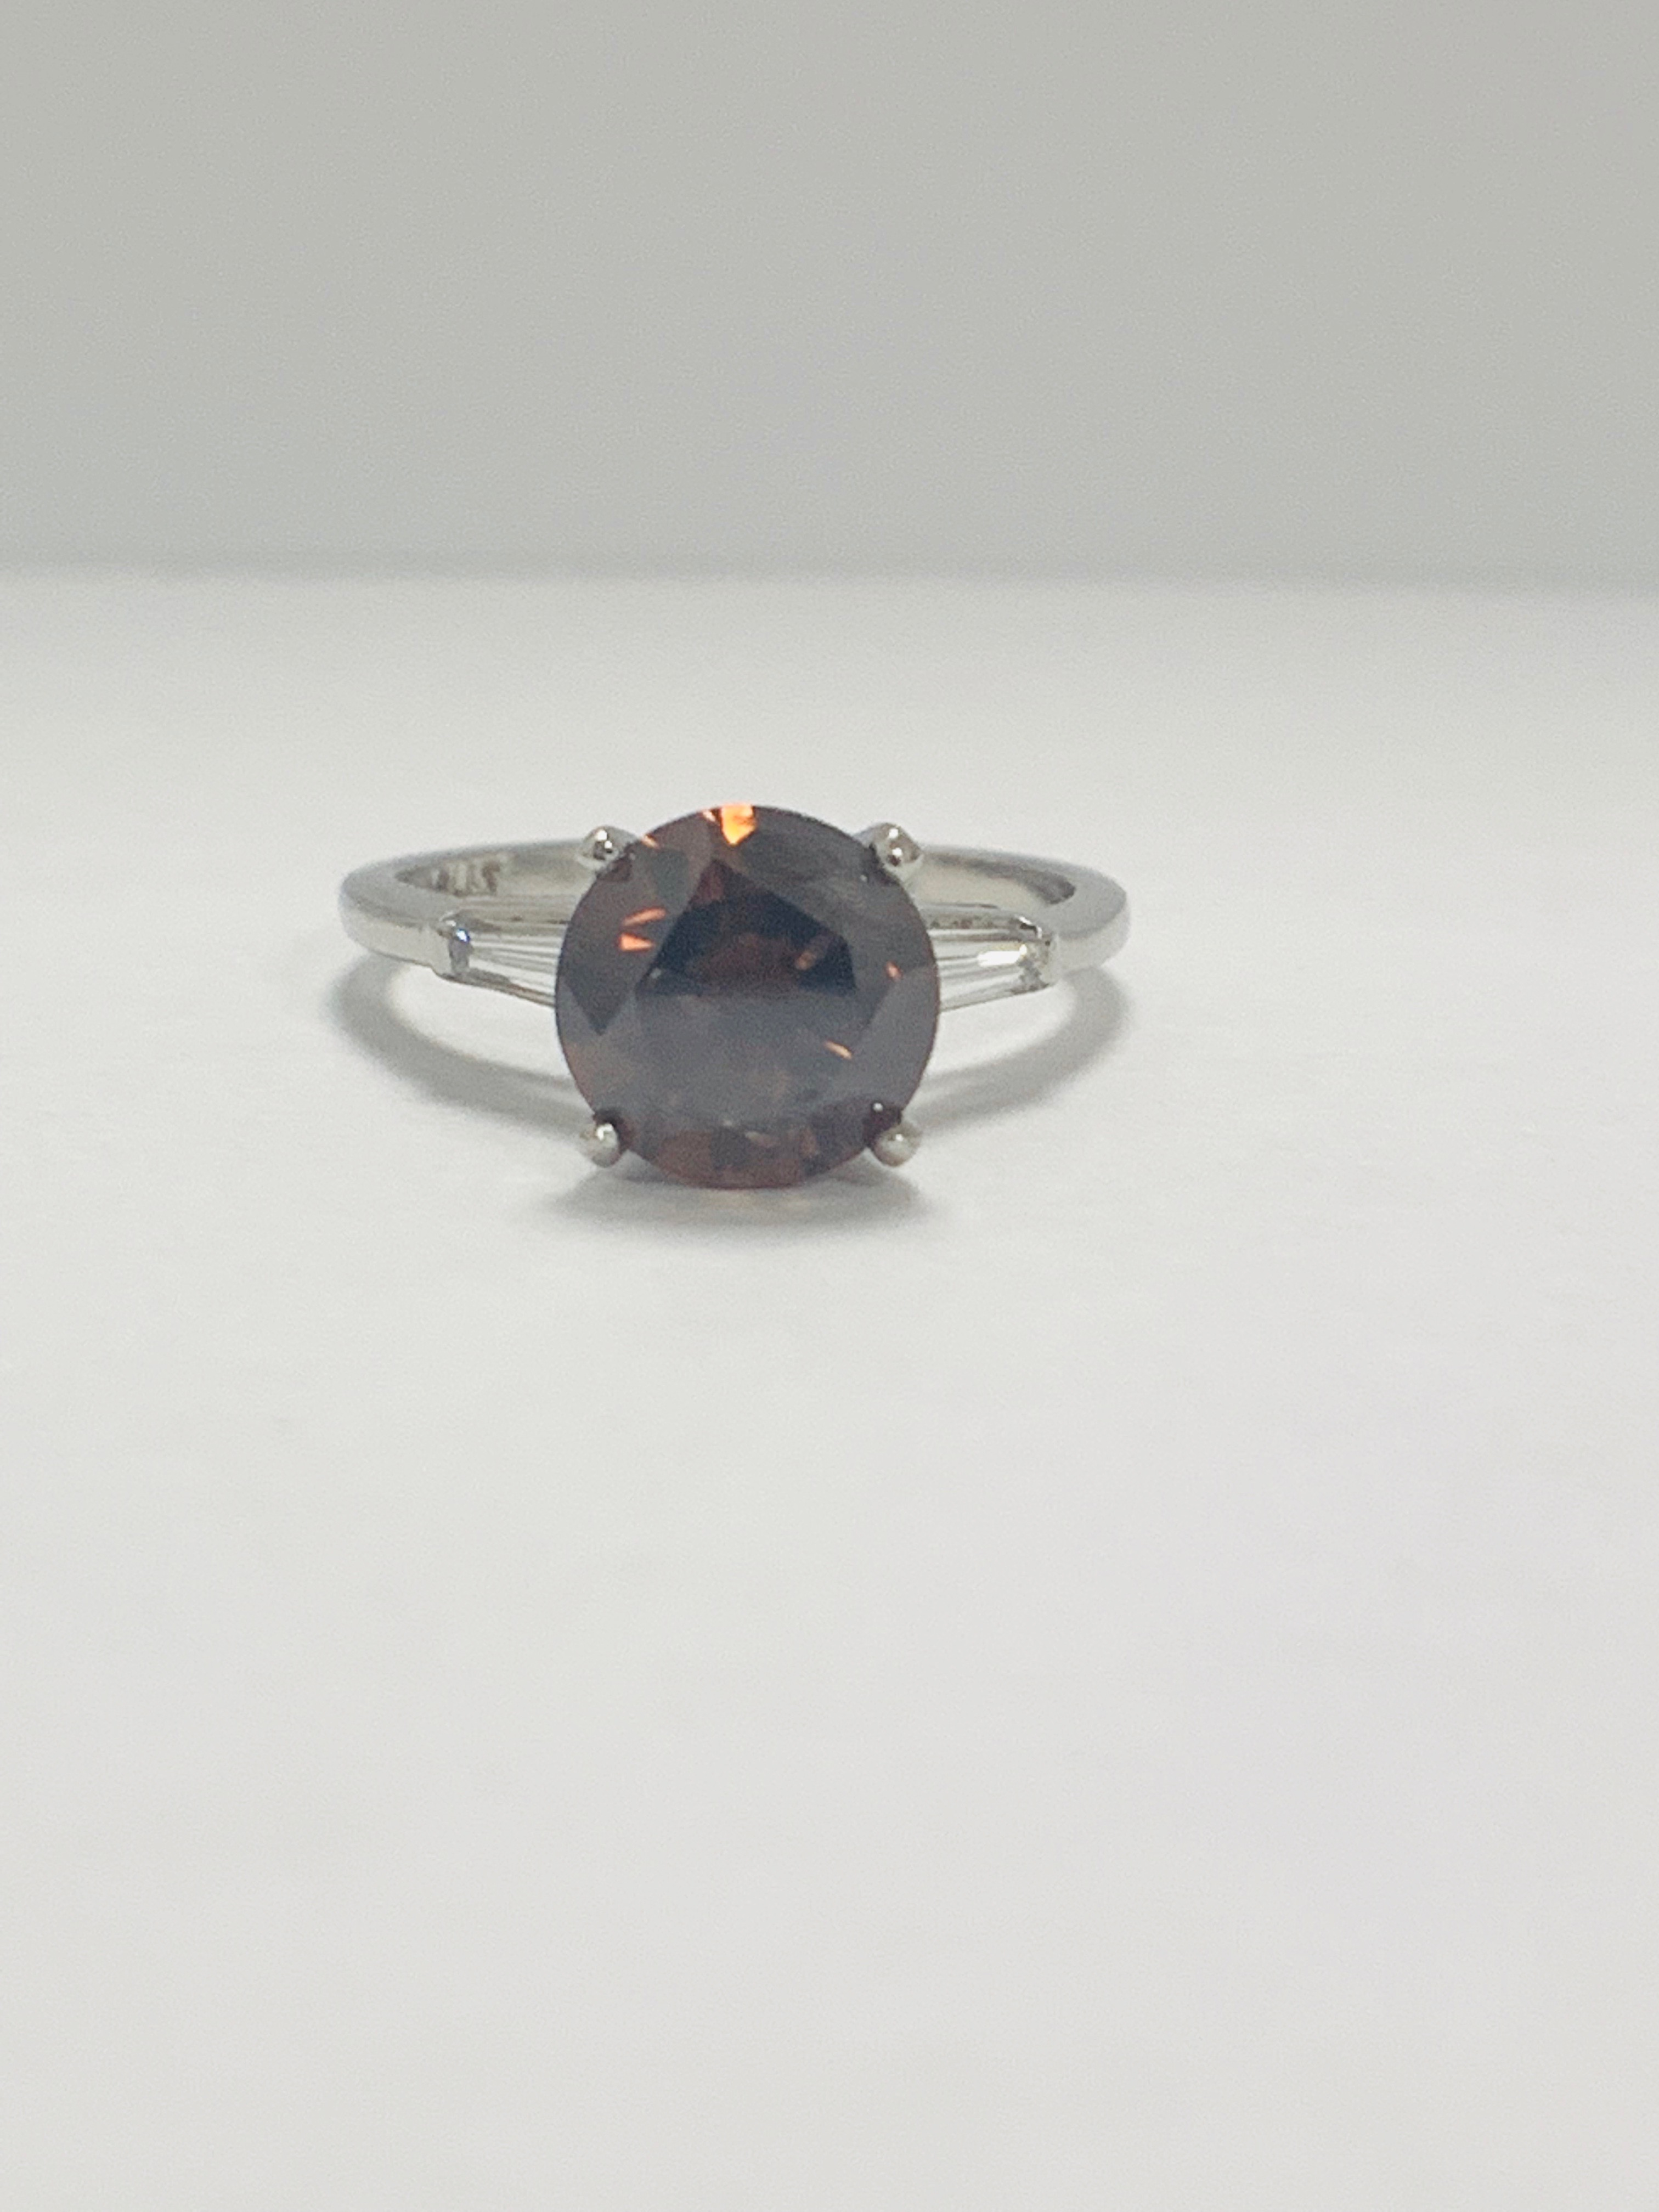 Platinum Diamond ring featuring centre, round brilliant cut, deep orangey brown Diamond (2.15ct)